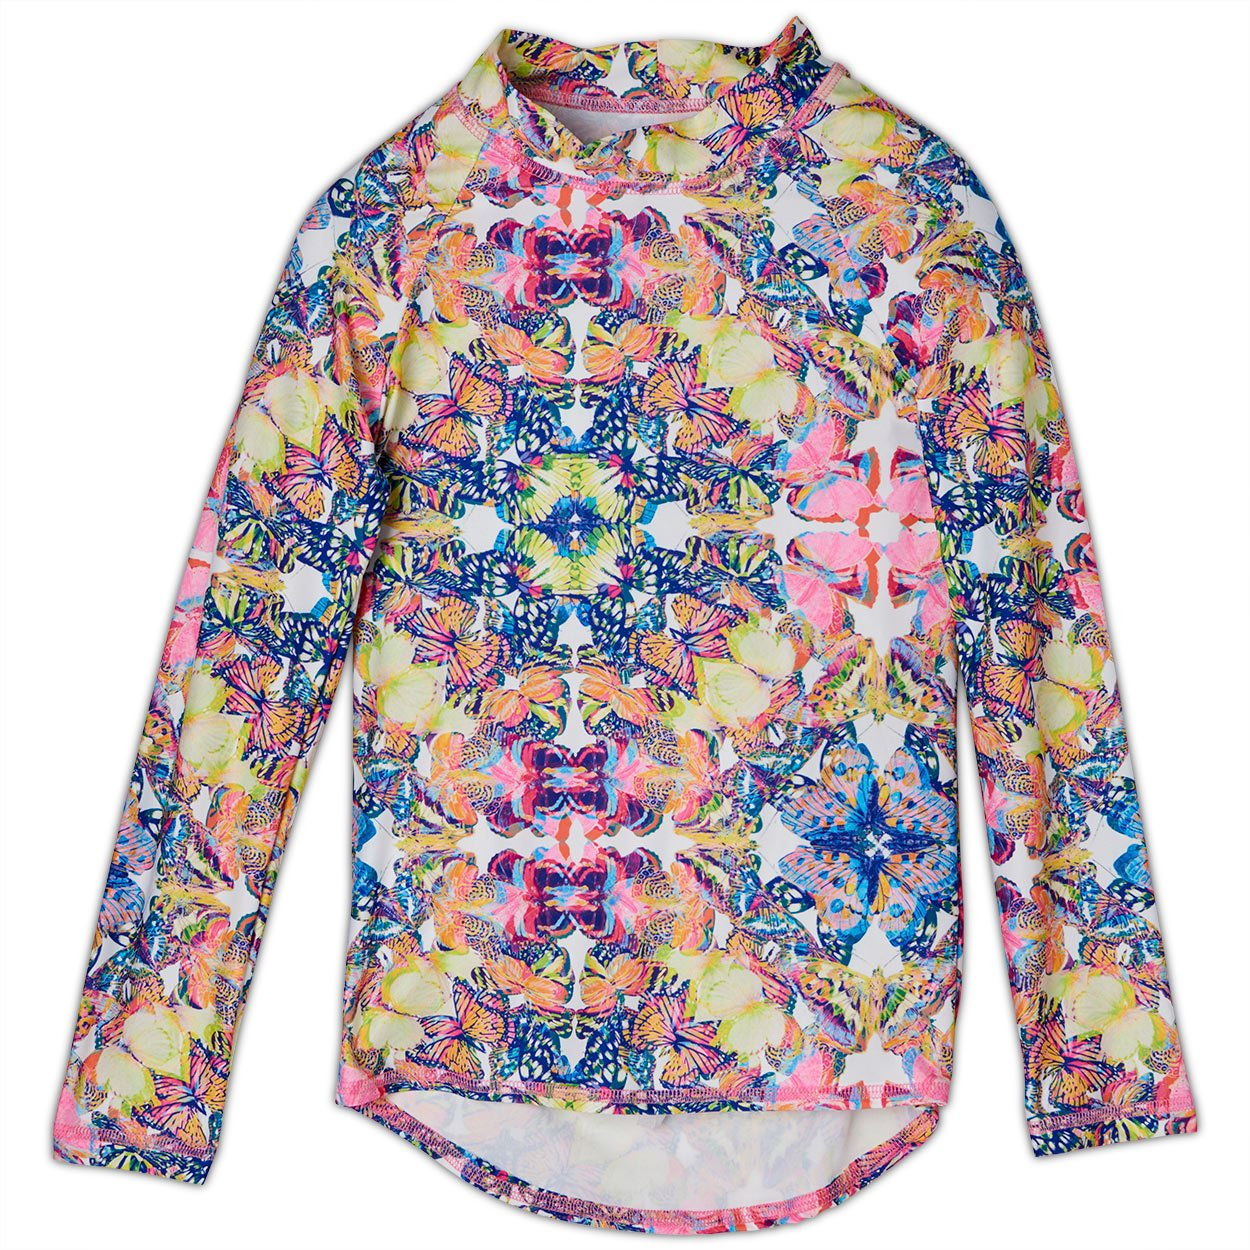 Kaleidoscope Long Sleeve Rash Guard Top UPF 50+